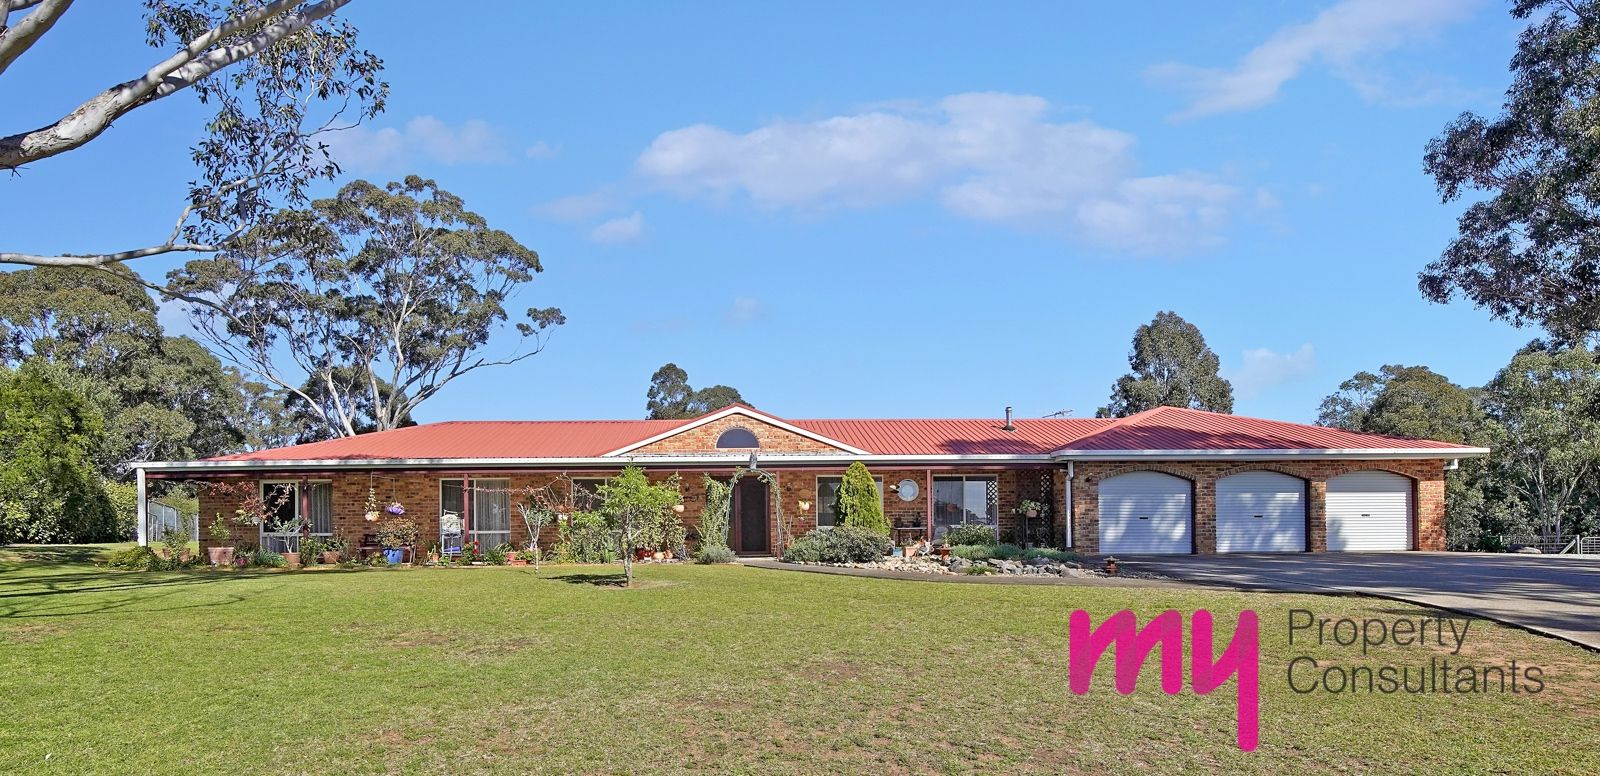 16 Greco Place, Rosemeadow NSW 2560, Image 0